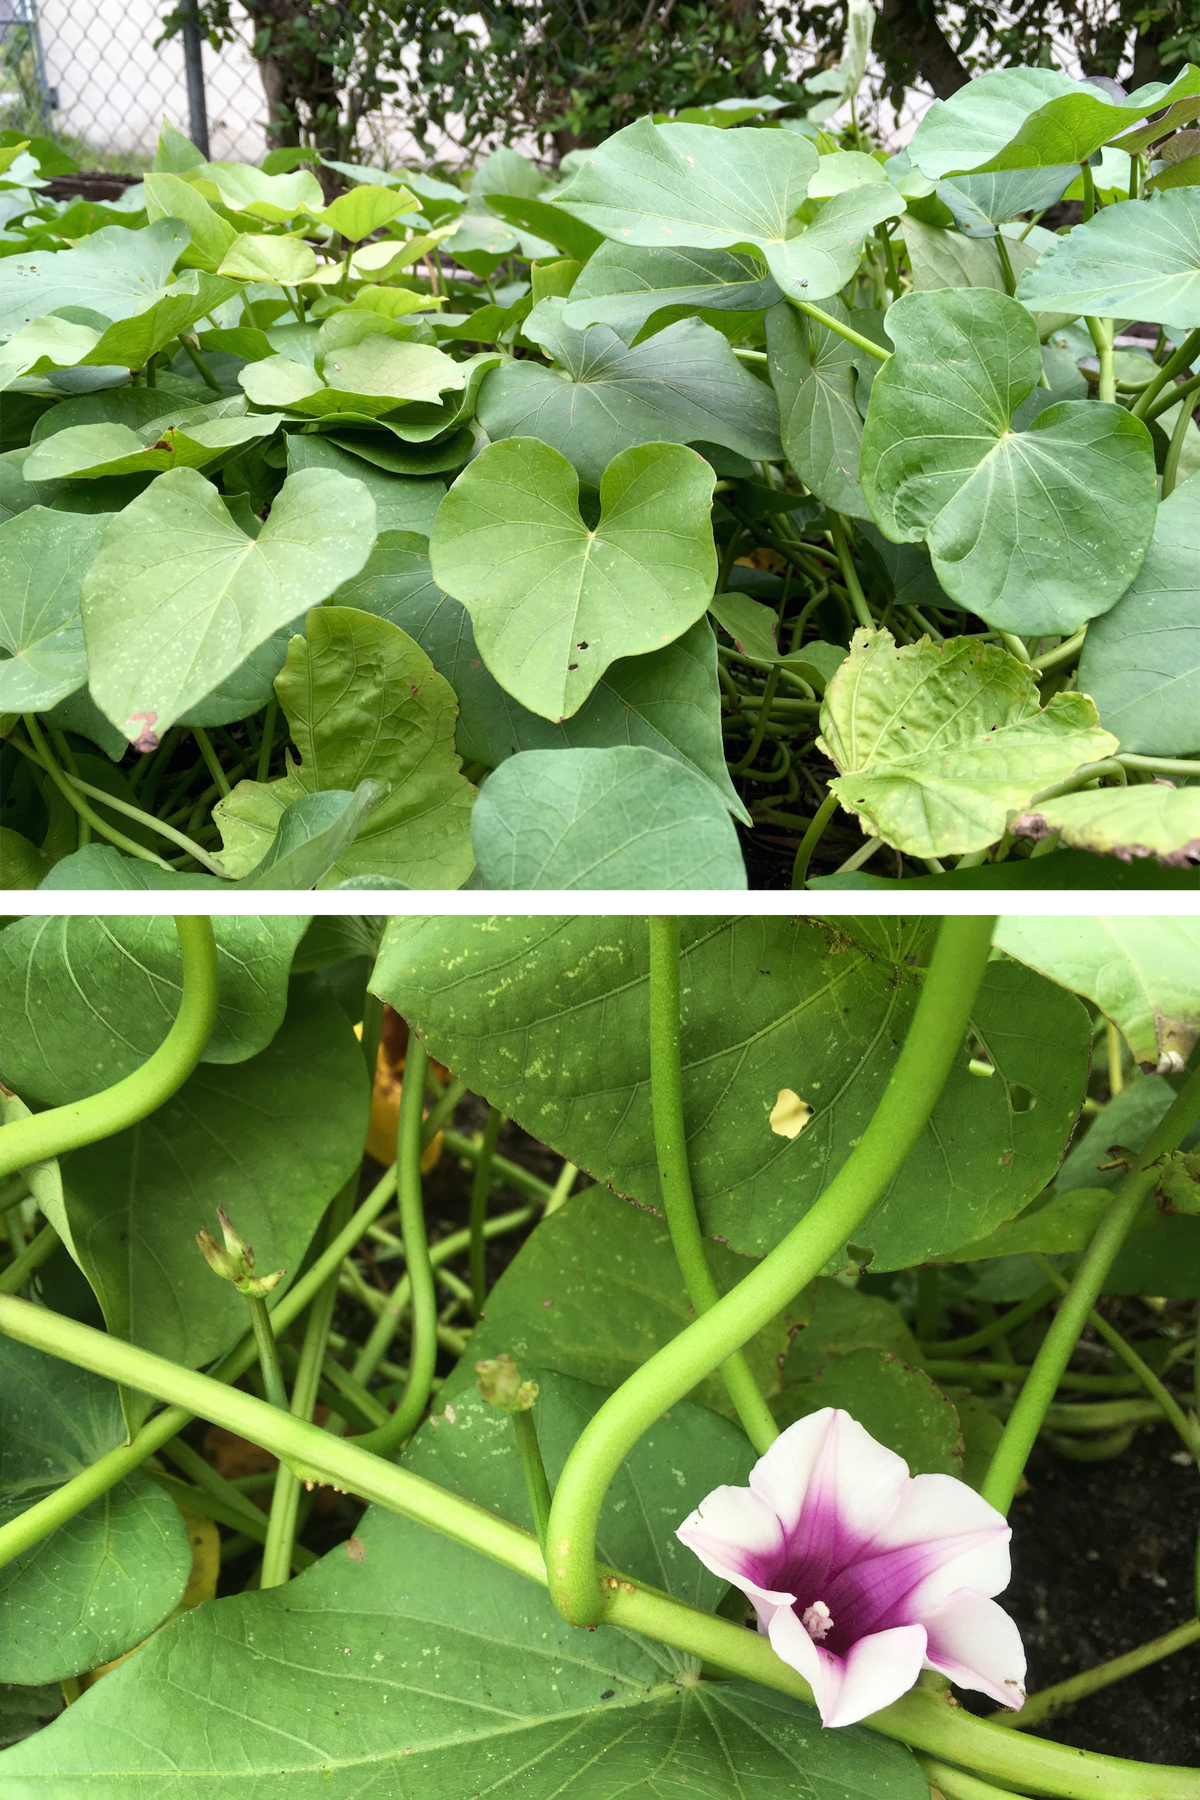 Edible Sweet Potato Vines